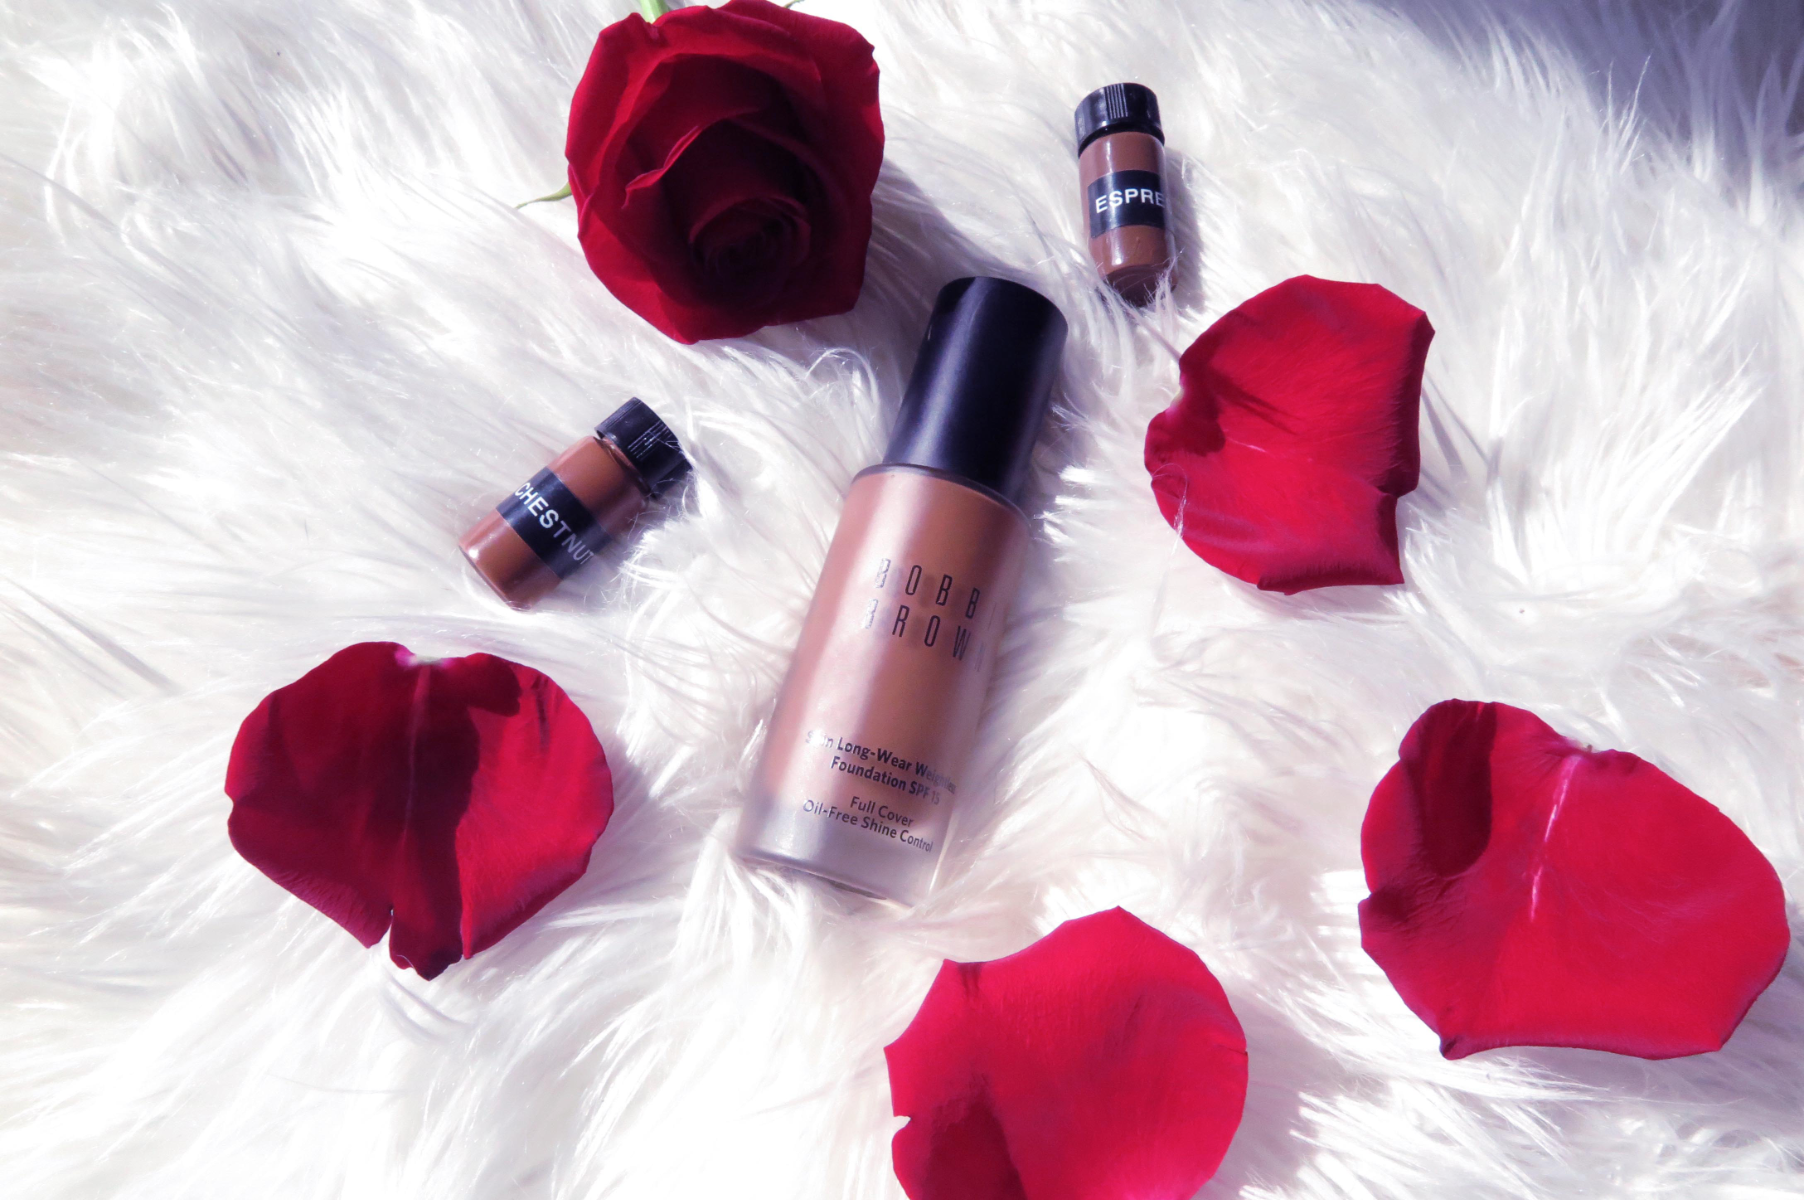 bobbi brown, tanaye white, foundation, makeup, beauty